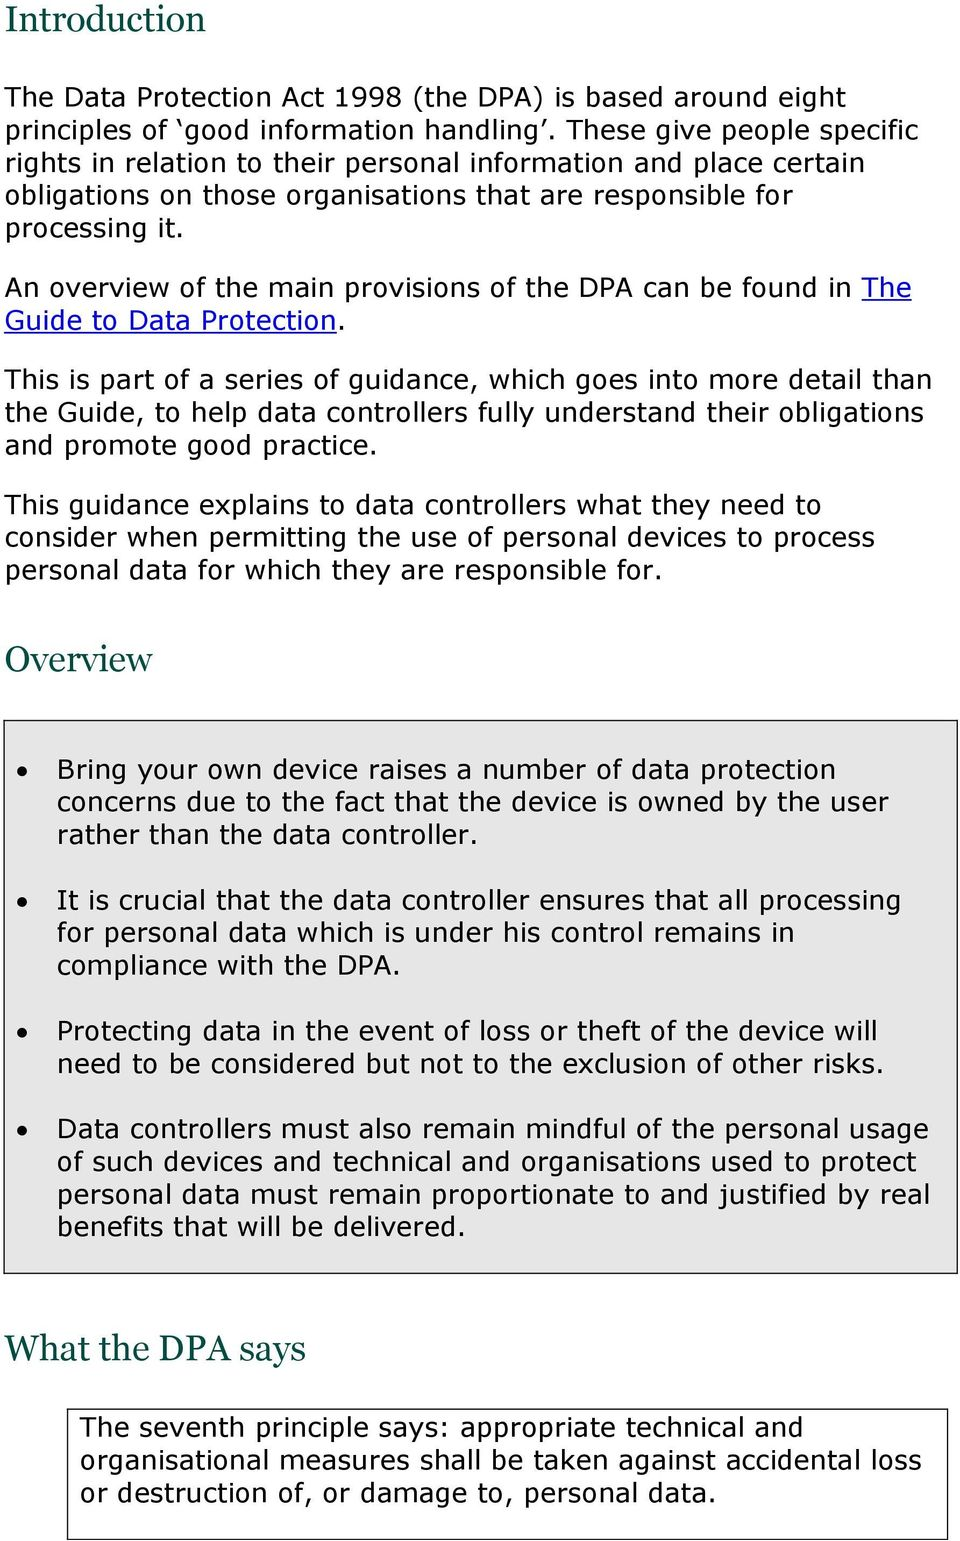 An overview of the main provisions of the DPA can be found in The Guide to Data Protection.